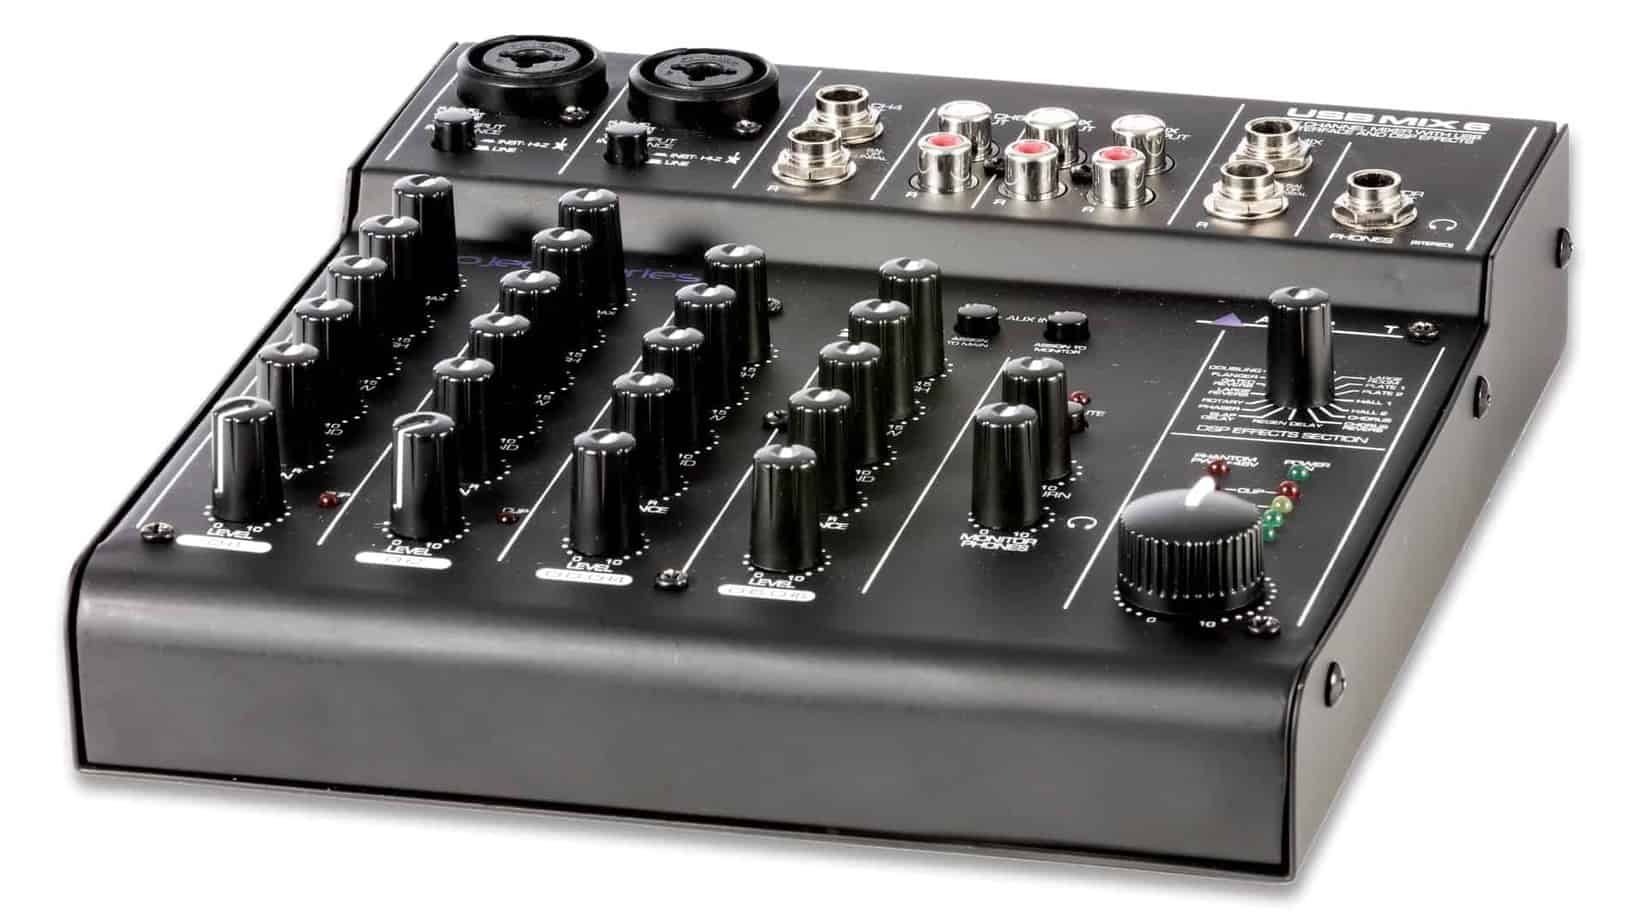 Mixer And Audio Interface for Podcasting